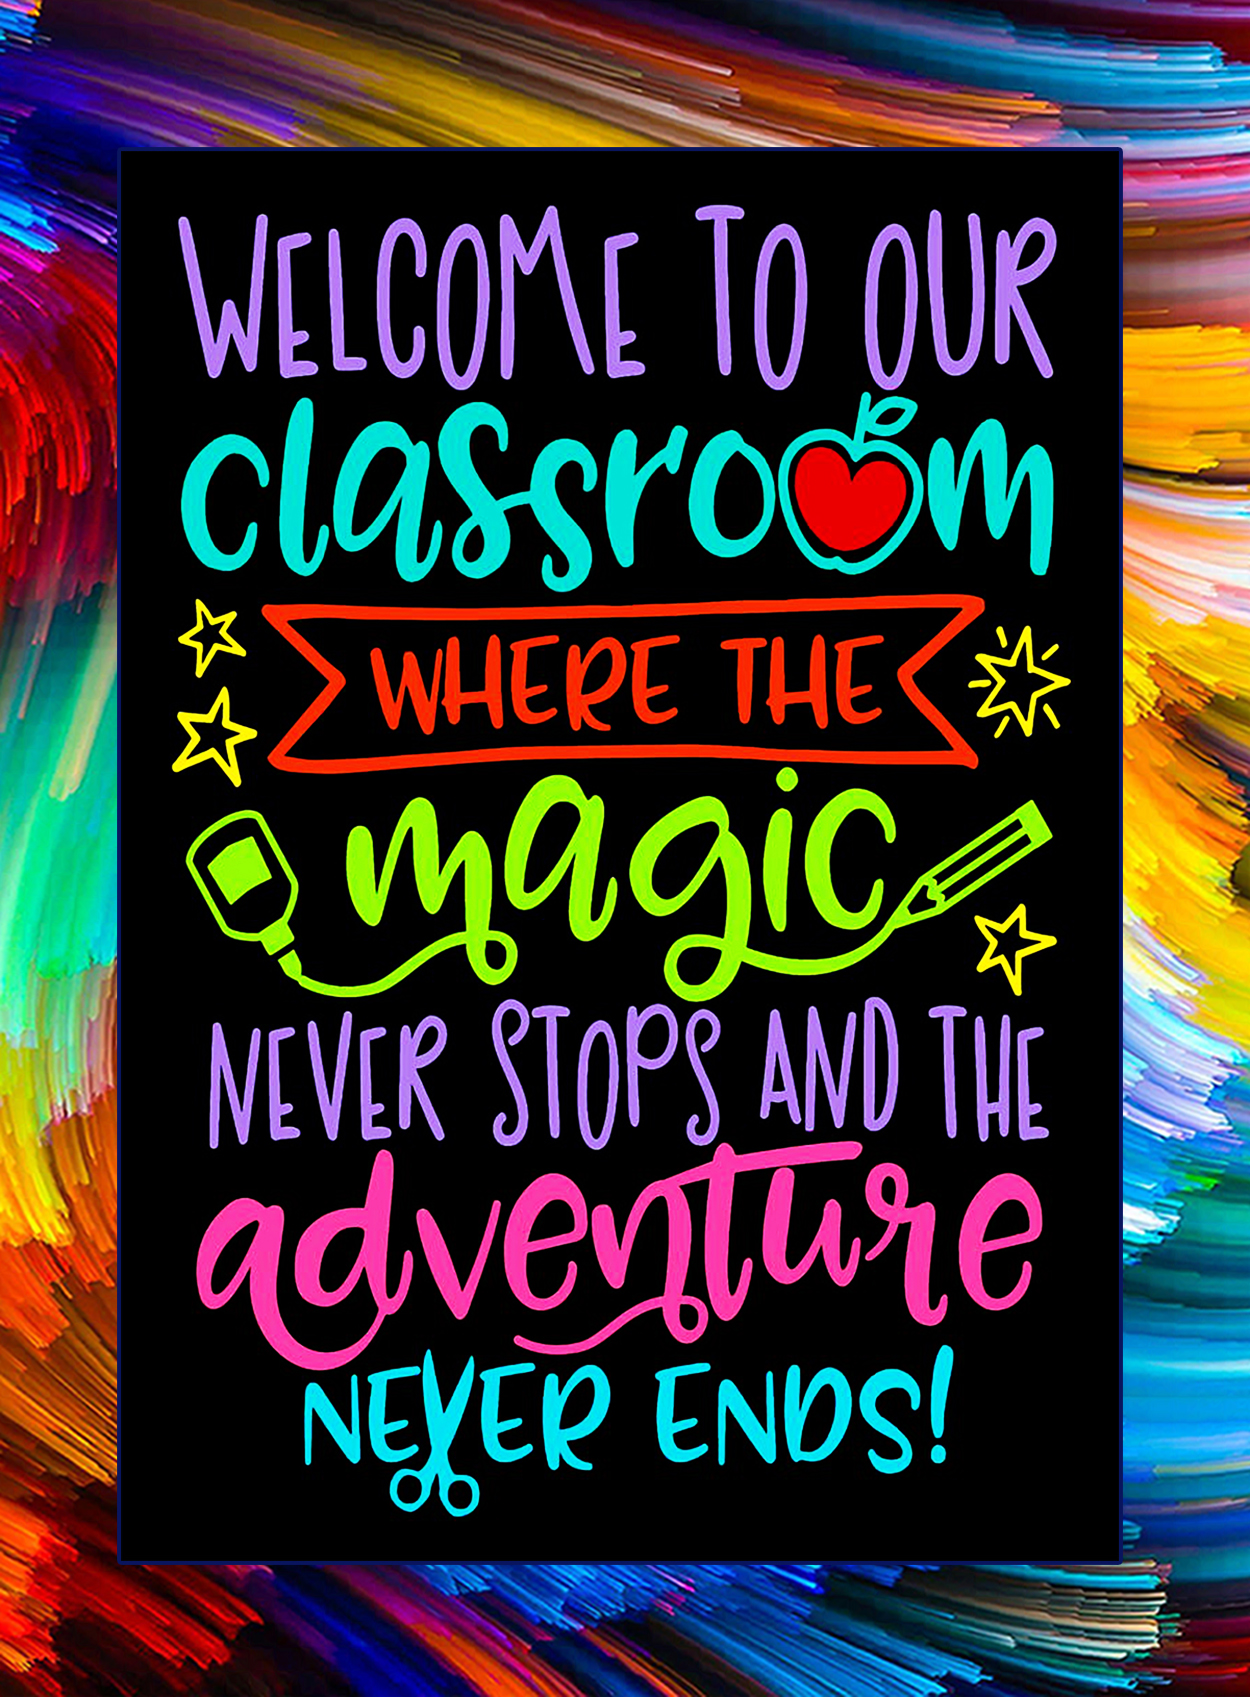 Welcome to our classroom where the magic never stops poster - A3